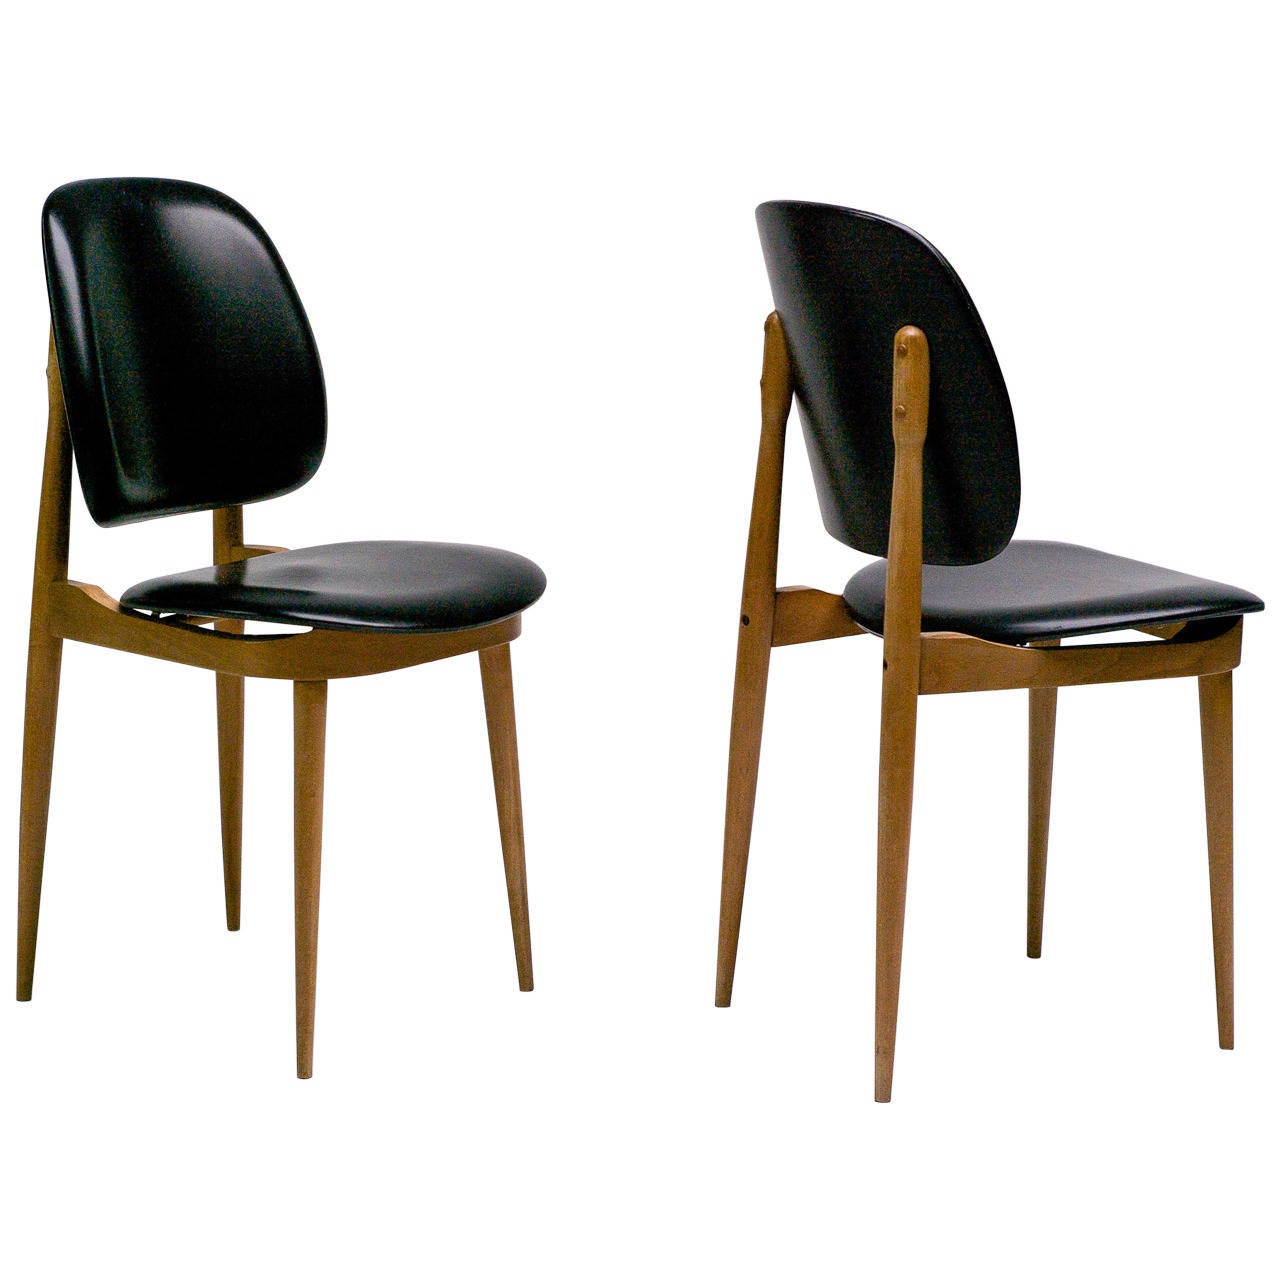 pierre guariche side chairs at 1stdibs. Black Bedroom Furniture Sets. Home Design Ideas